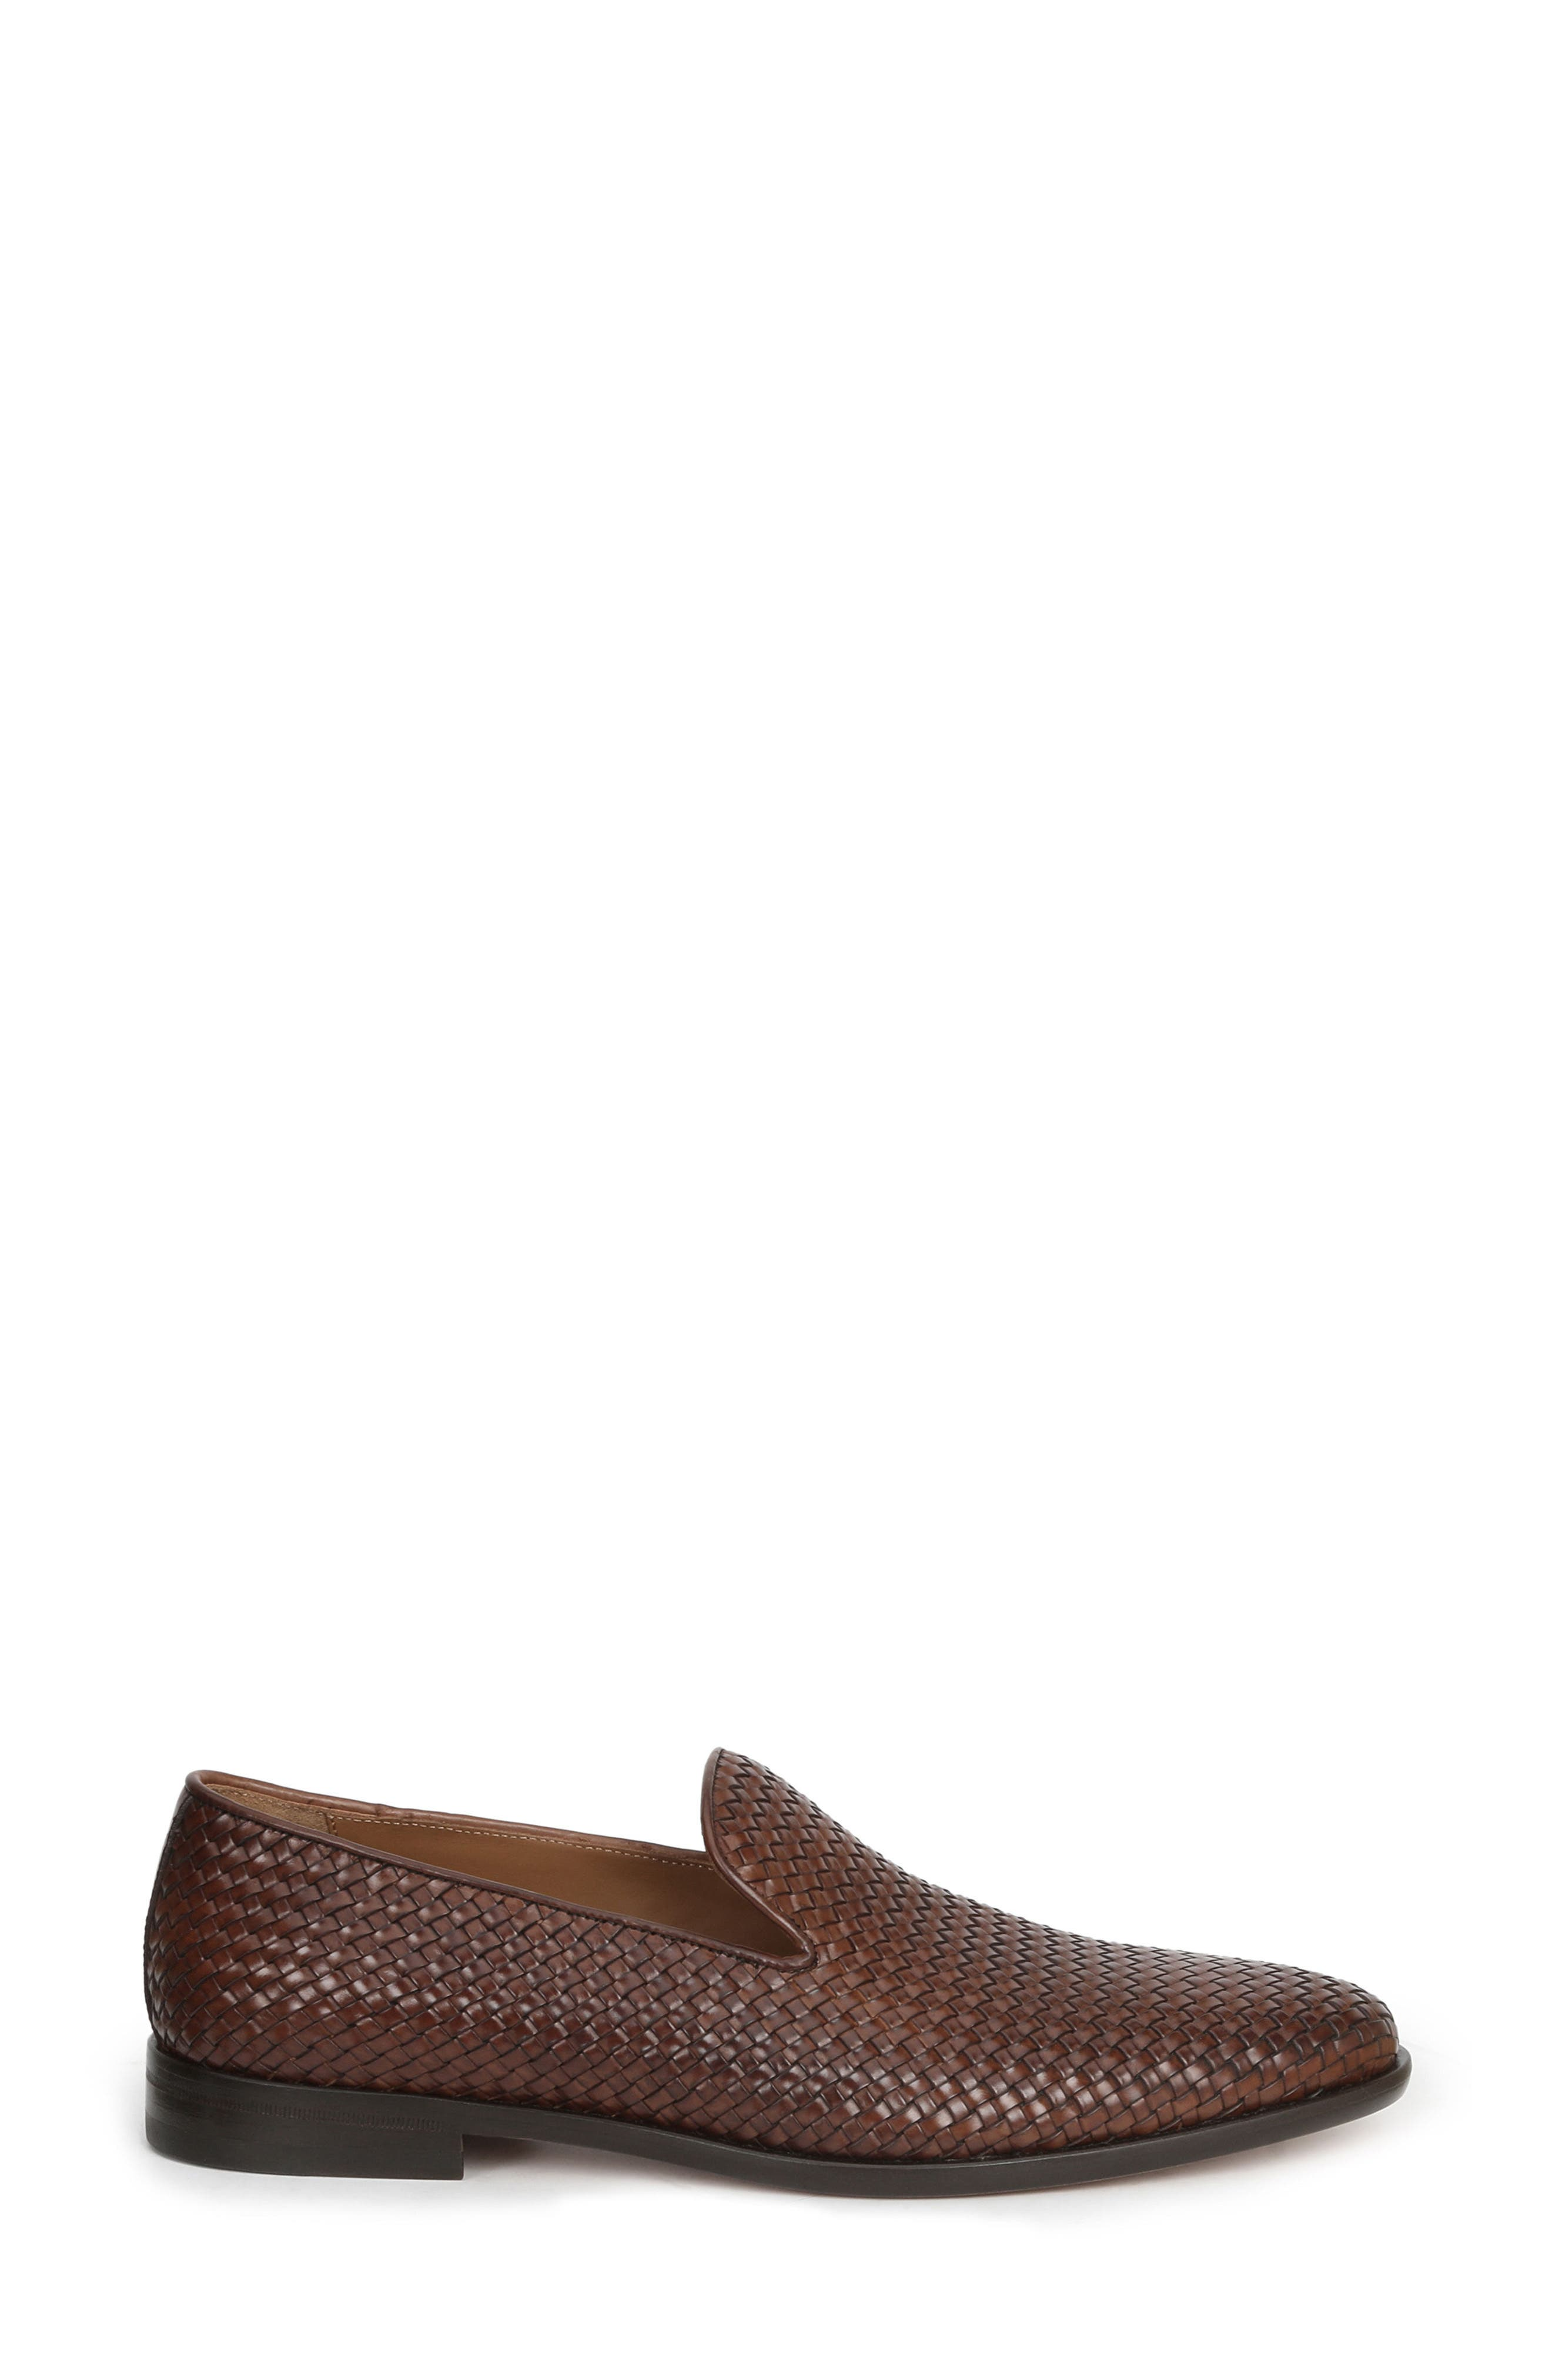 Picasso Woven Venetian Loafer,                             Alternate thumbnail 3, color,                             Cognac